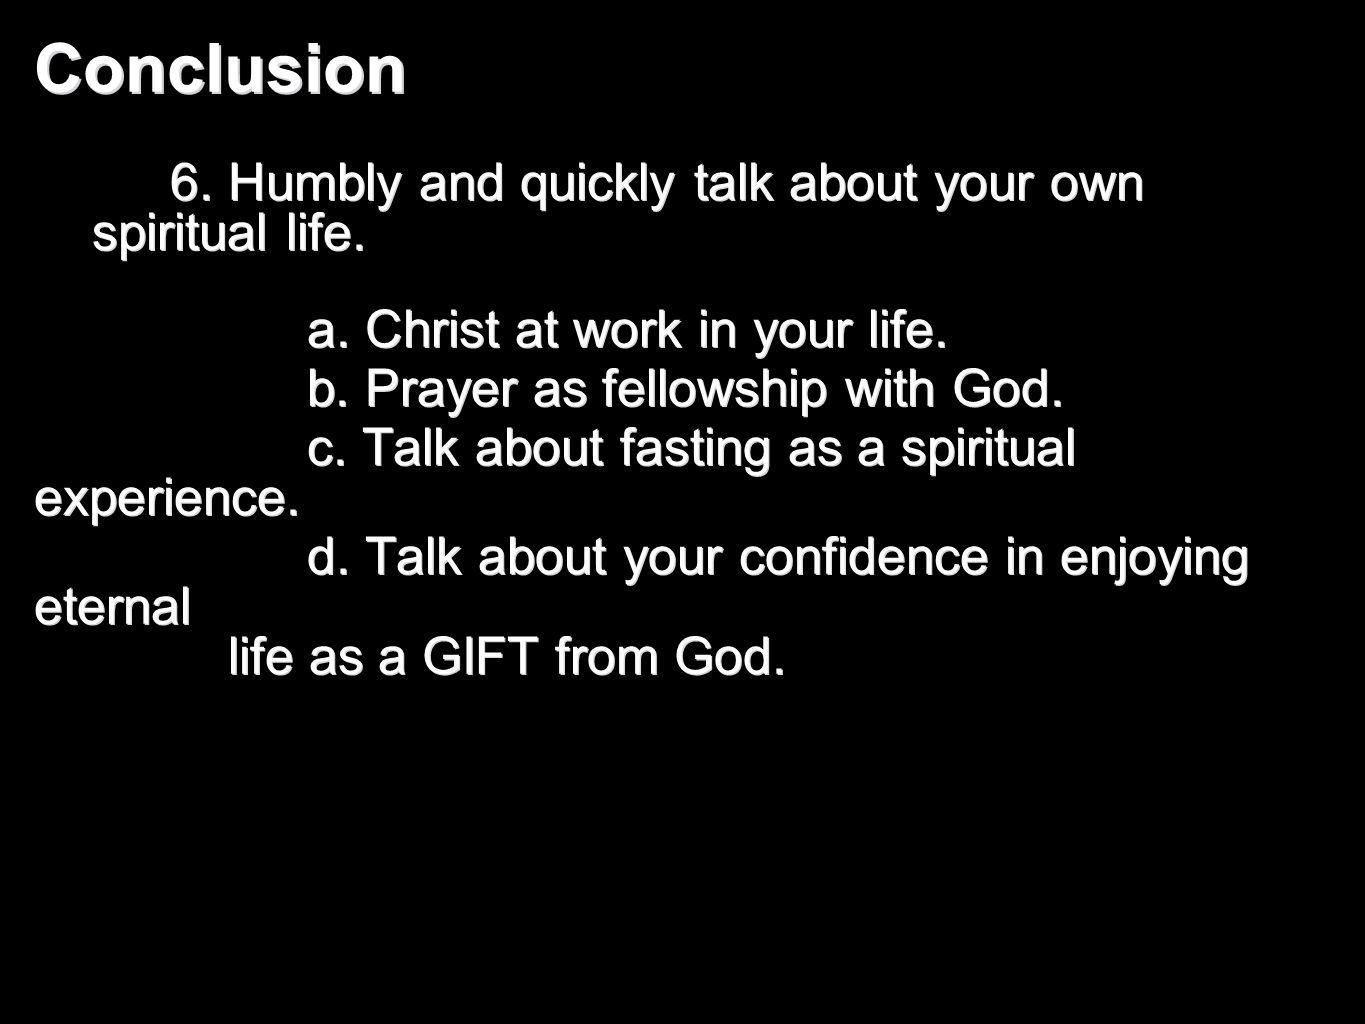 Conclusion 6. Humbly and quickly talk about your own spiritual life.